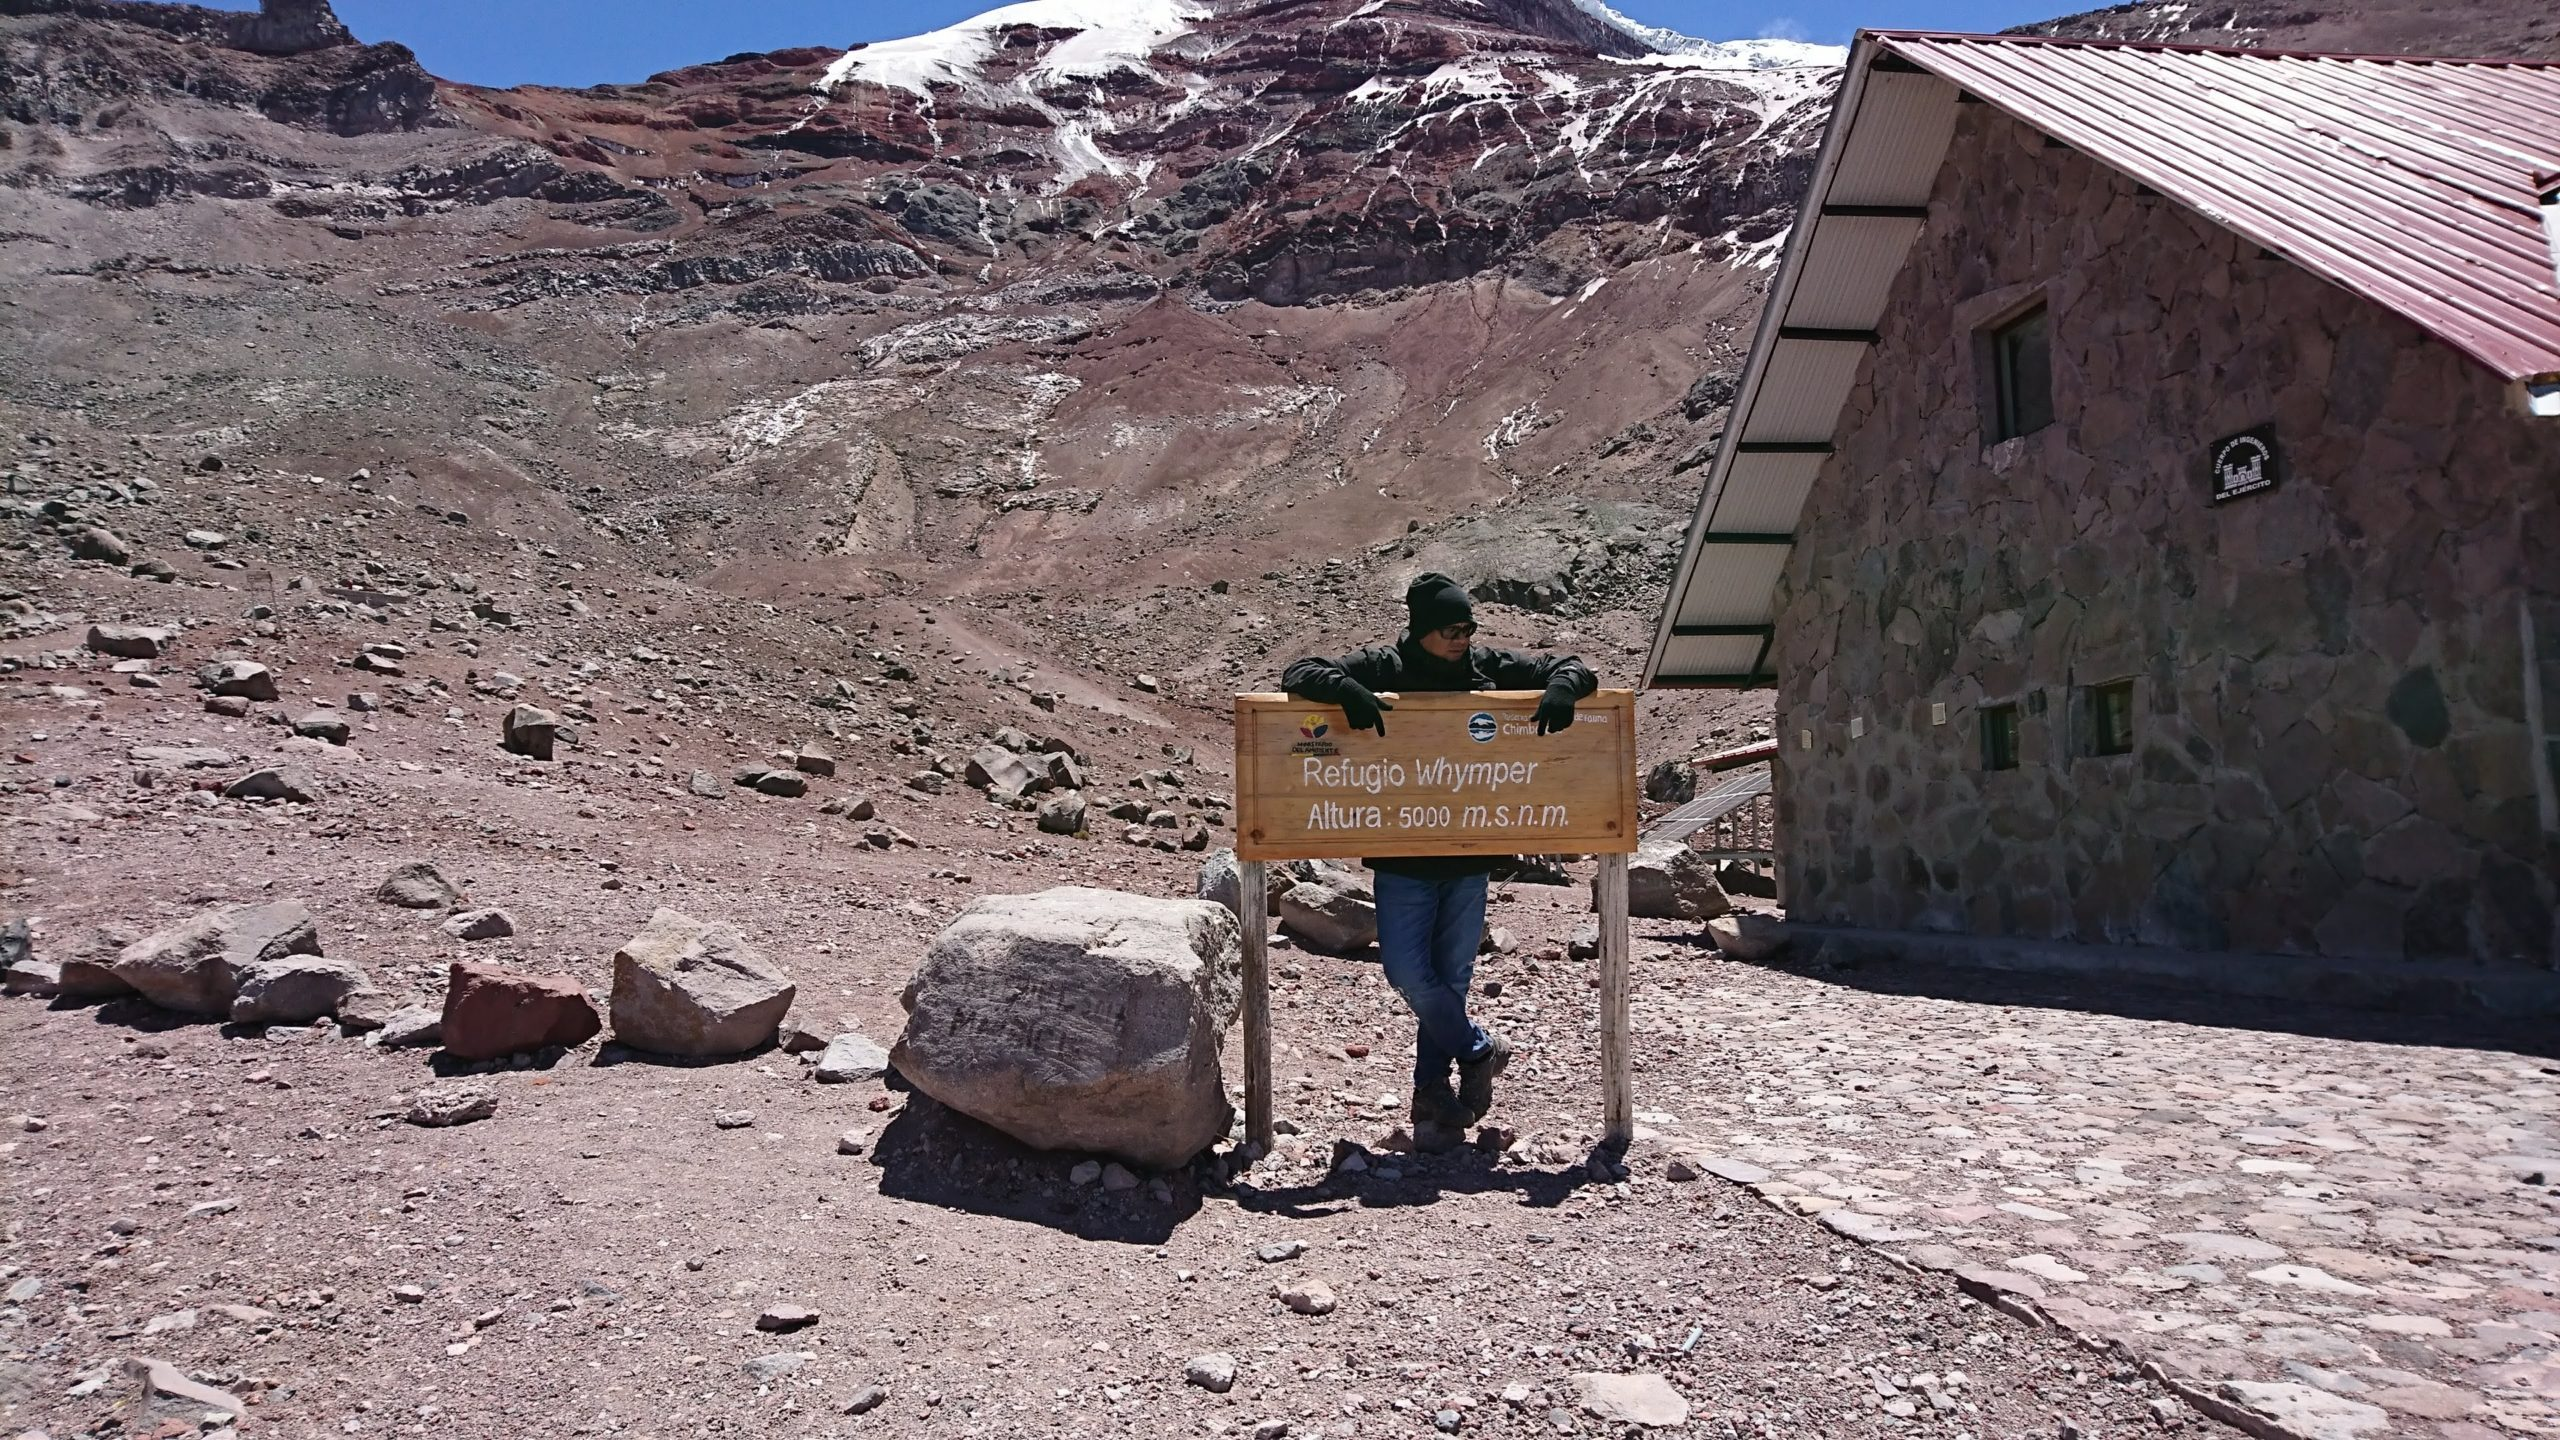 2nd Refuge. 5000 mts